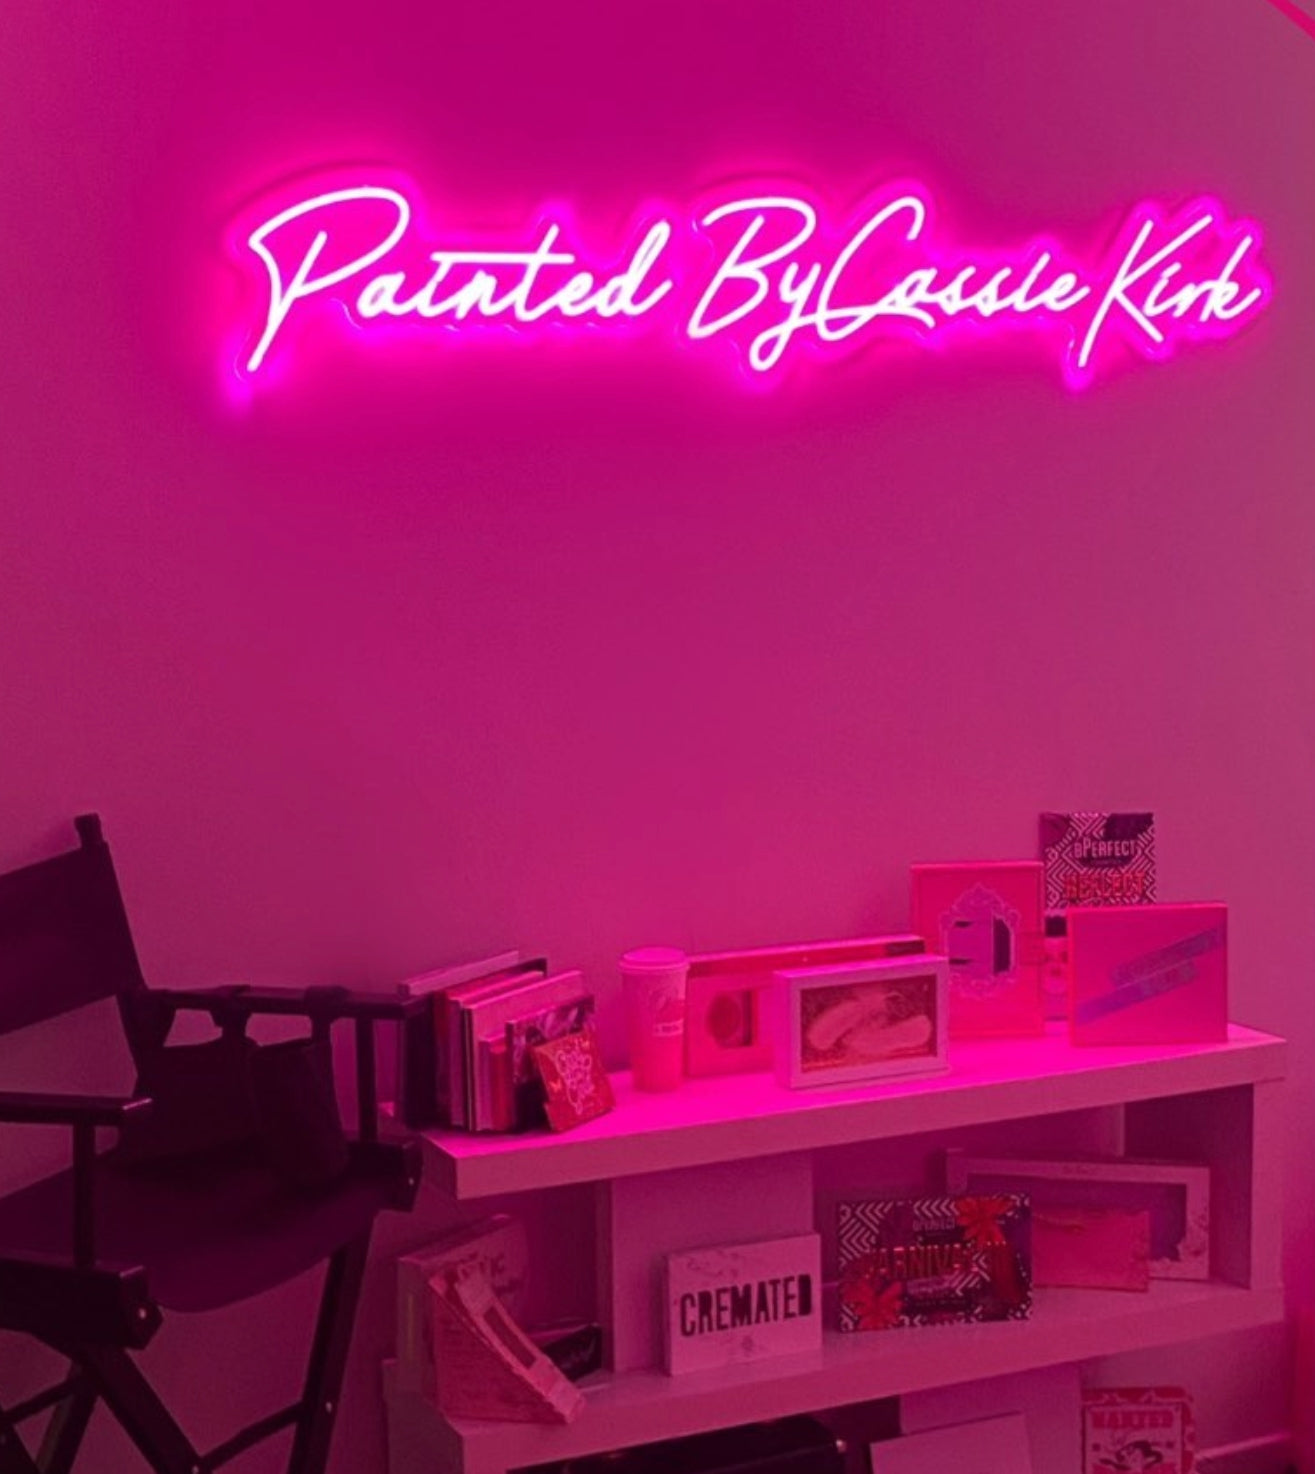 make up studio neon sign created for our client's business. Painted by cassiekirk neon light was made in vivid pink for her home make up studio.                                       she has used it to copyright all her images of her work as a backdrop lighting.